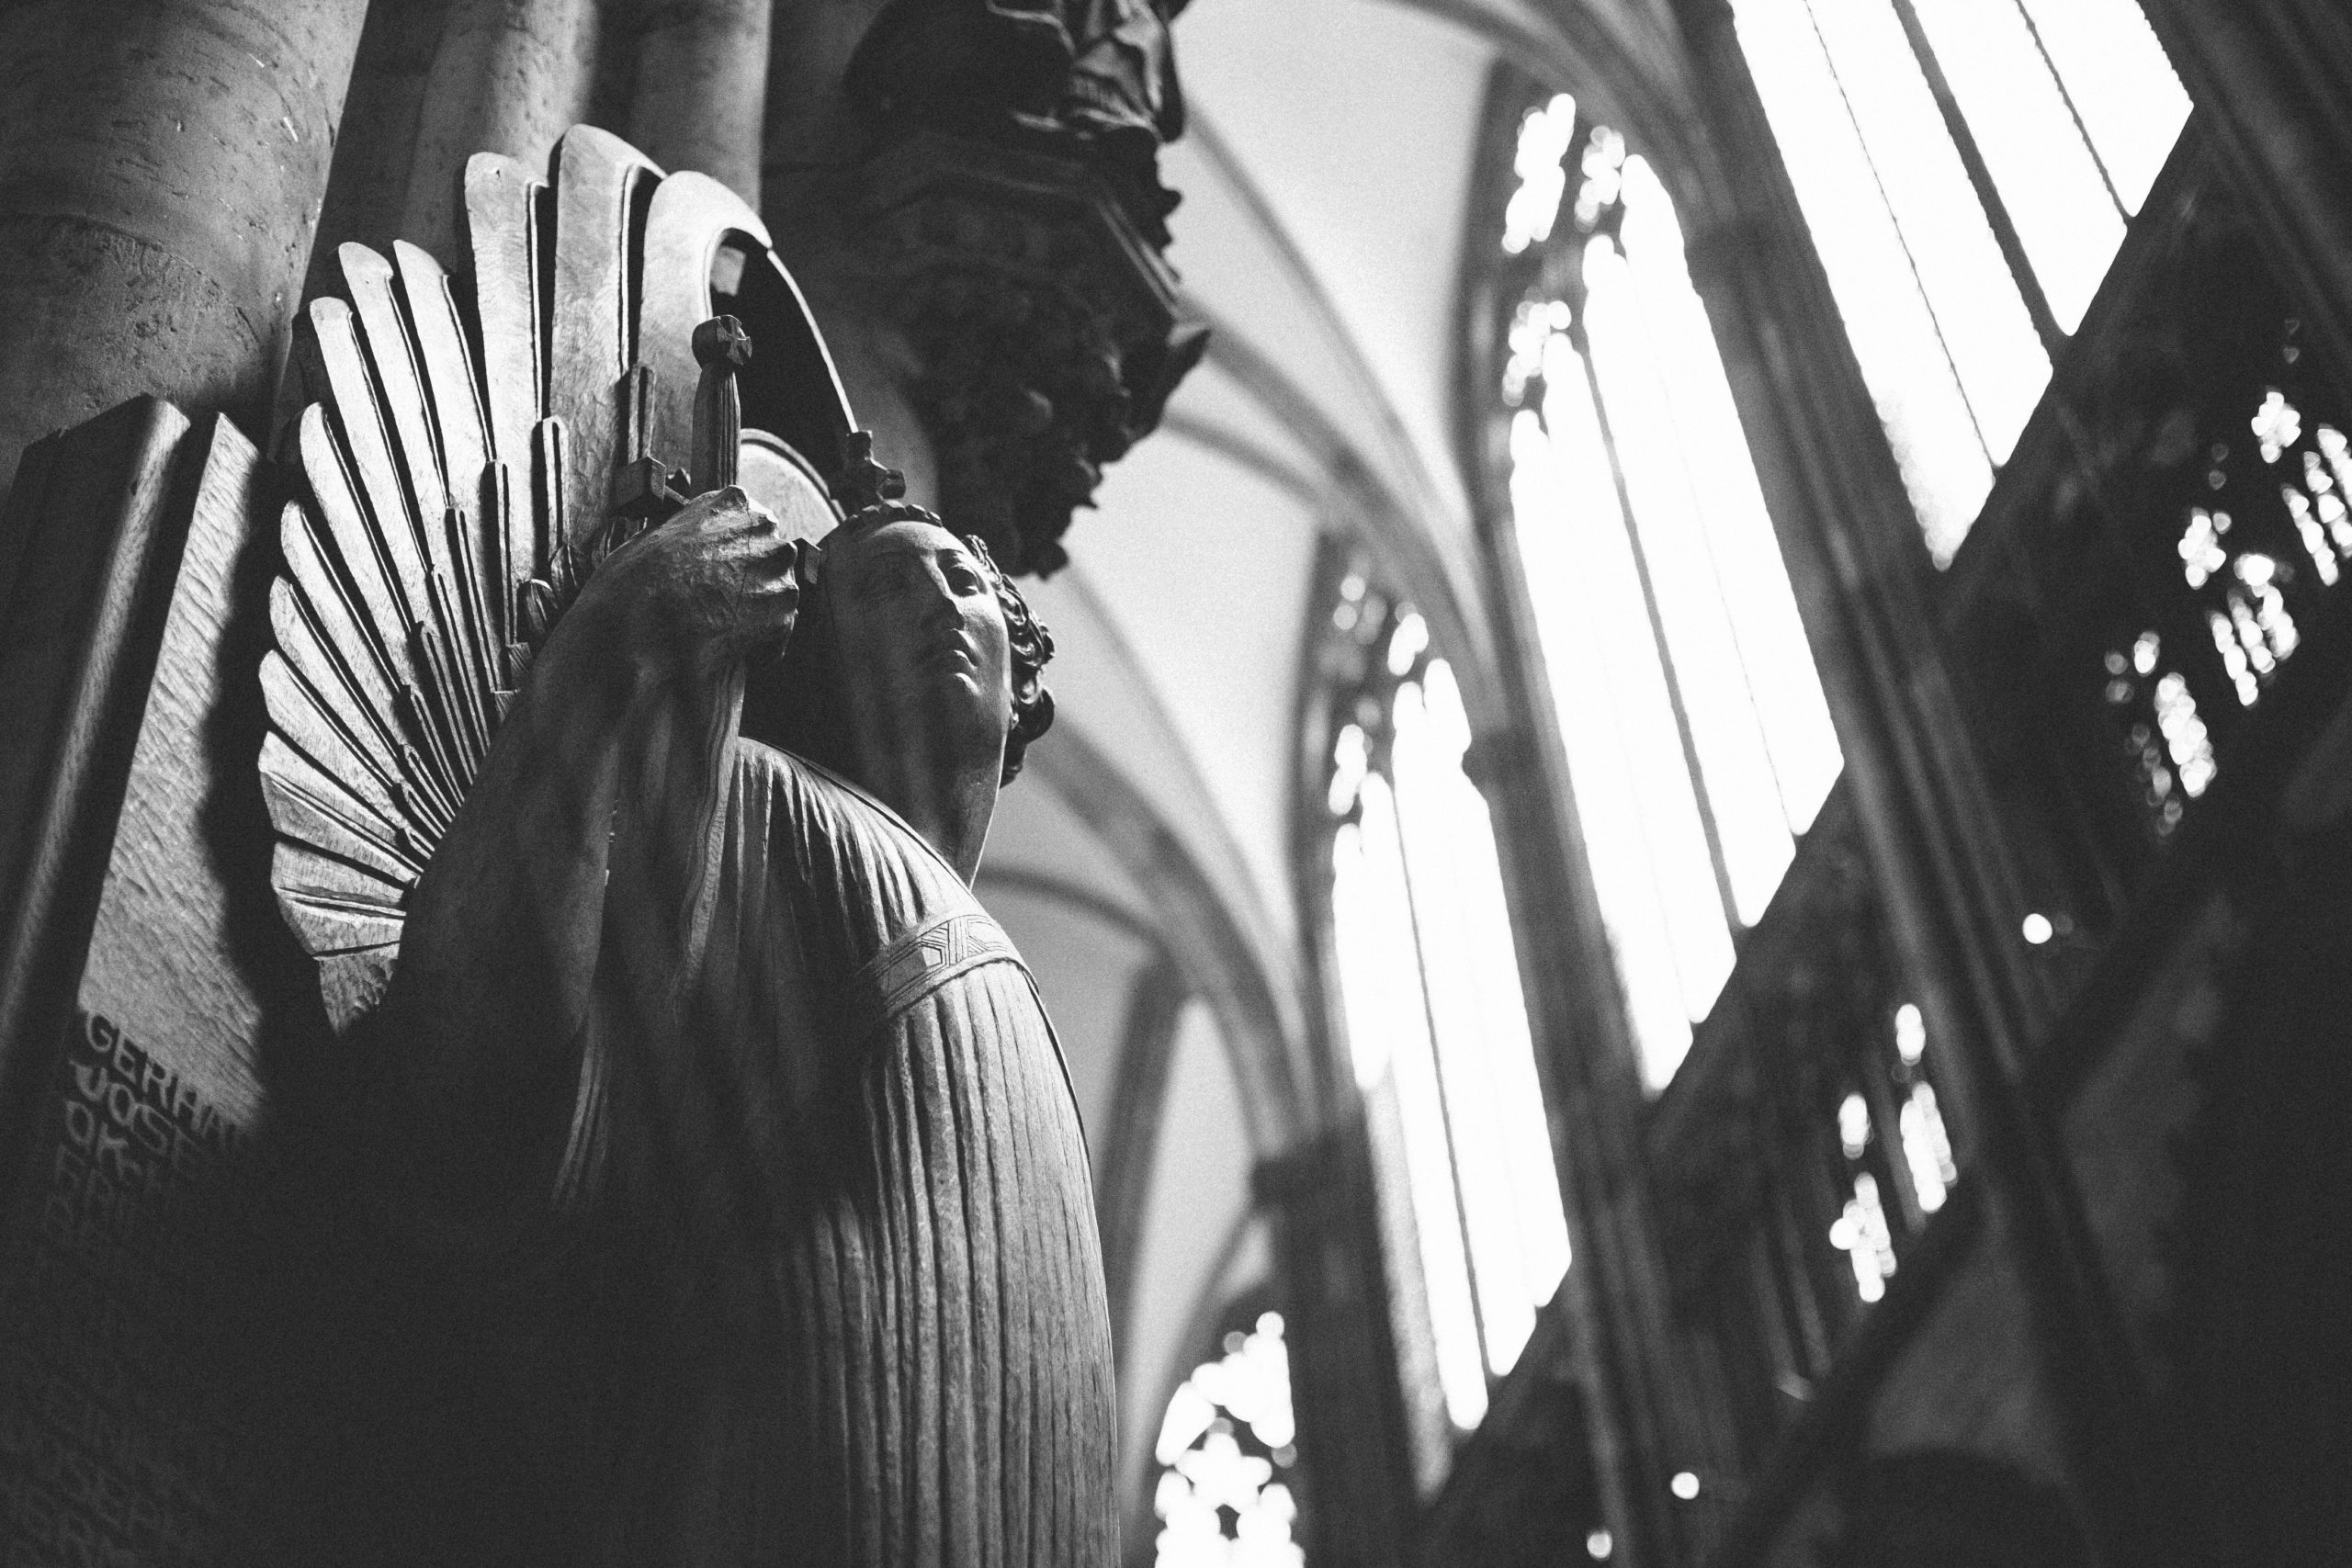 A statue inside the Cologne Cathedral in Cologne, Germany